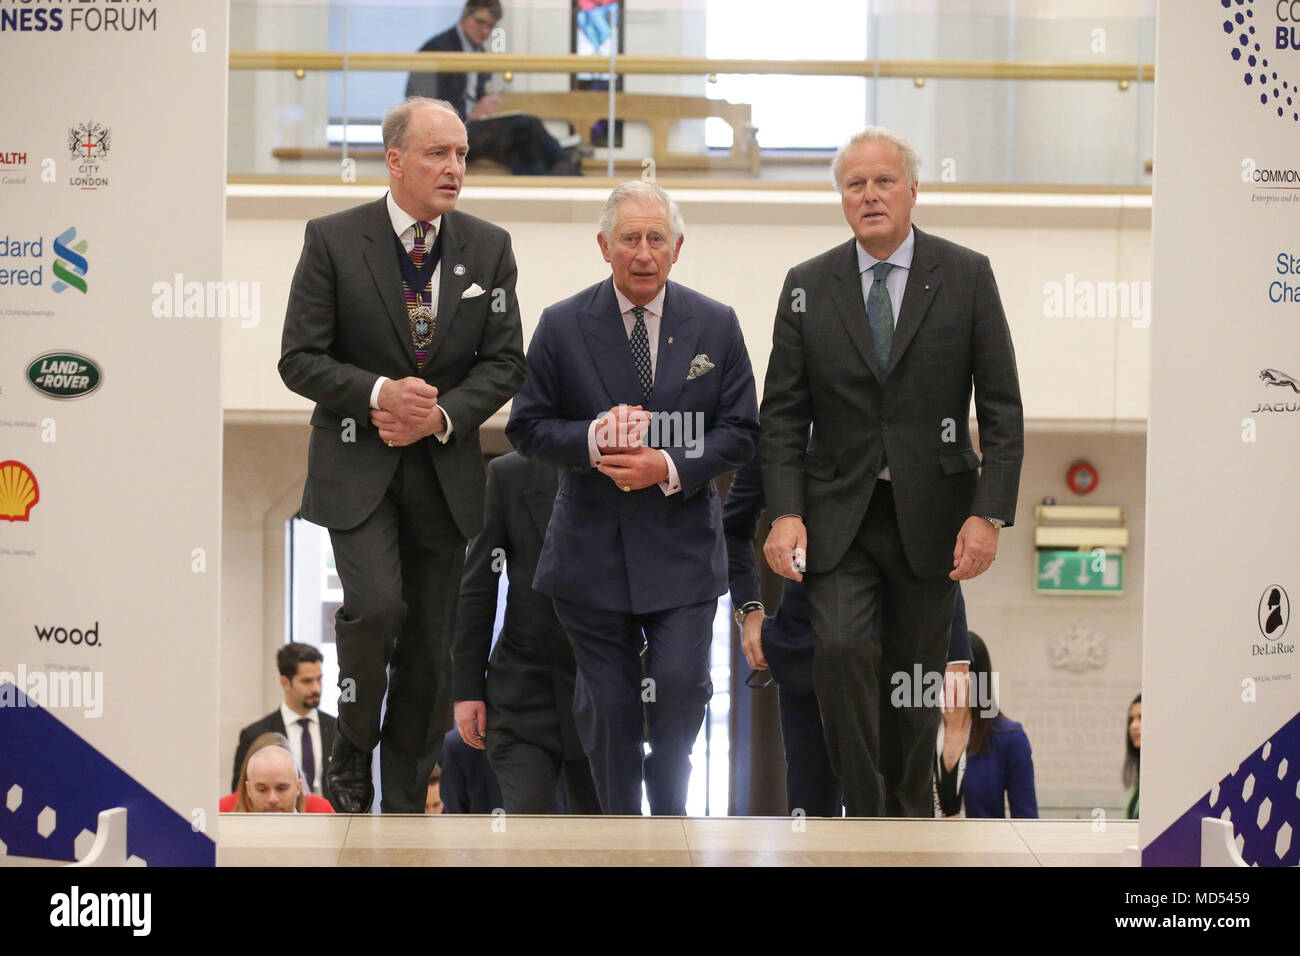 The Prince of Wales flanked by The Lord Mayor of London, Charles Bowman (left) and Chairman of the Commonwealth Enterprise and Investment Council, Lord Marland, arrives for a reception at the closing session of the Commonwealth Business Forum at the Guildhall in London, during the Commonwealth Heads of Government Meeting. - Stock Image